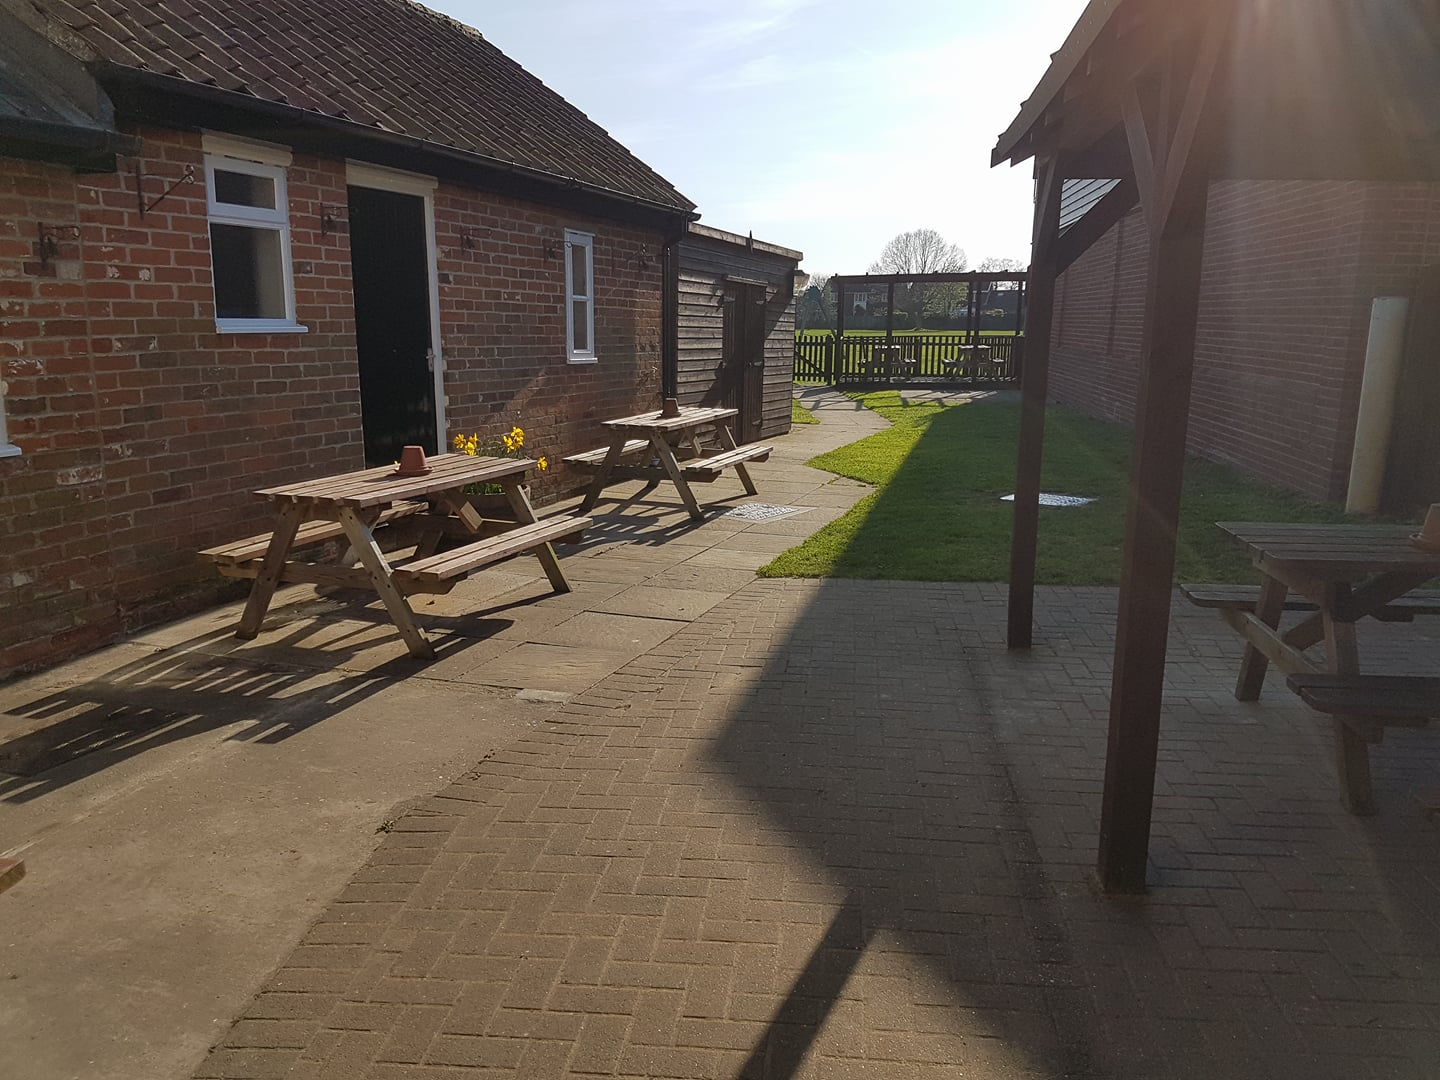 Our beer garden provides a great place to relax or even watch the children on the playing field while enjoying a drink!